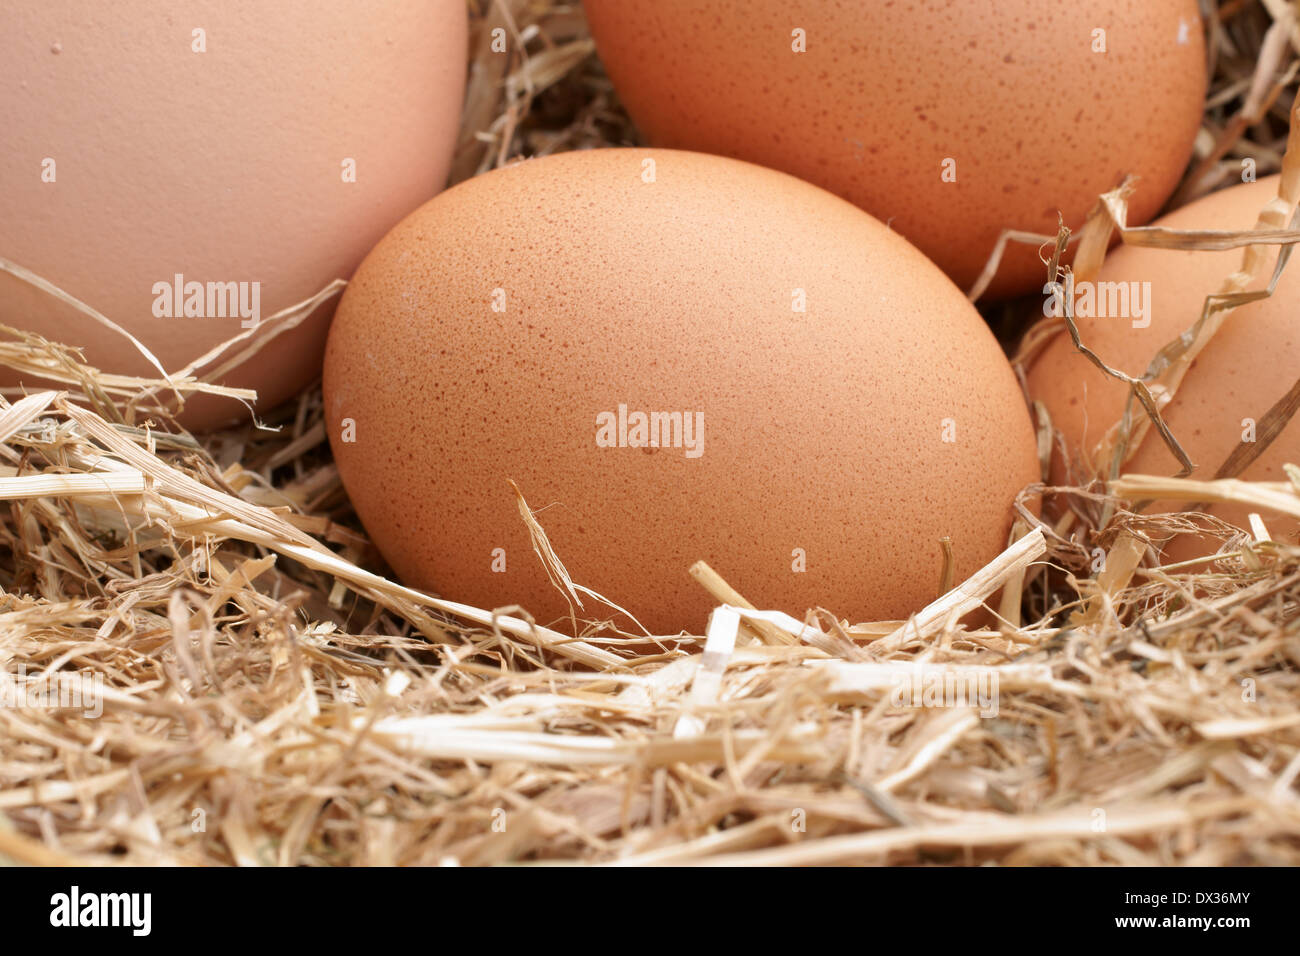 Freshly laid free range hens eggs in a bed of straw - Stock Image